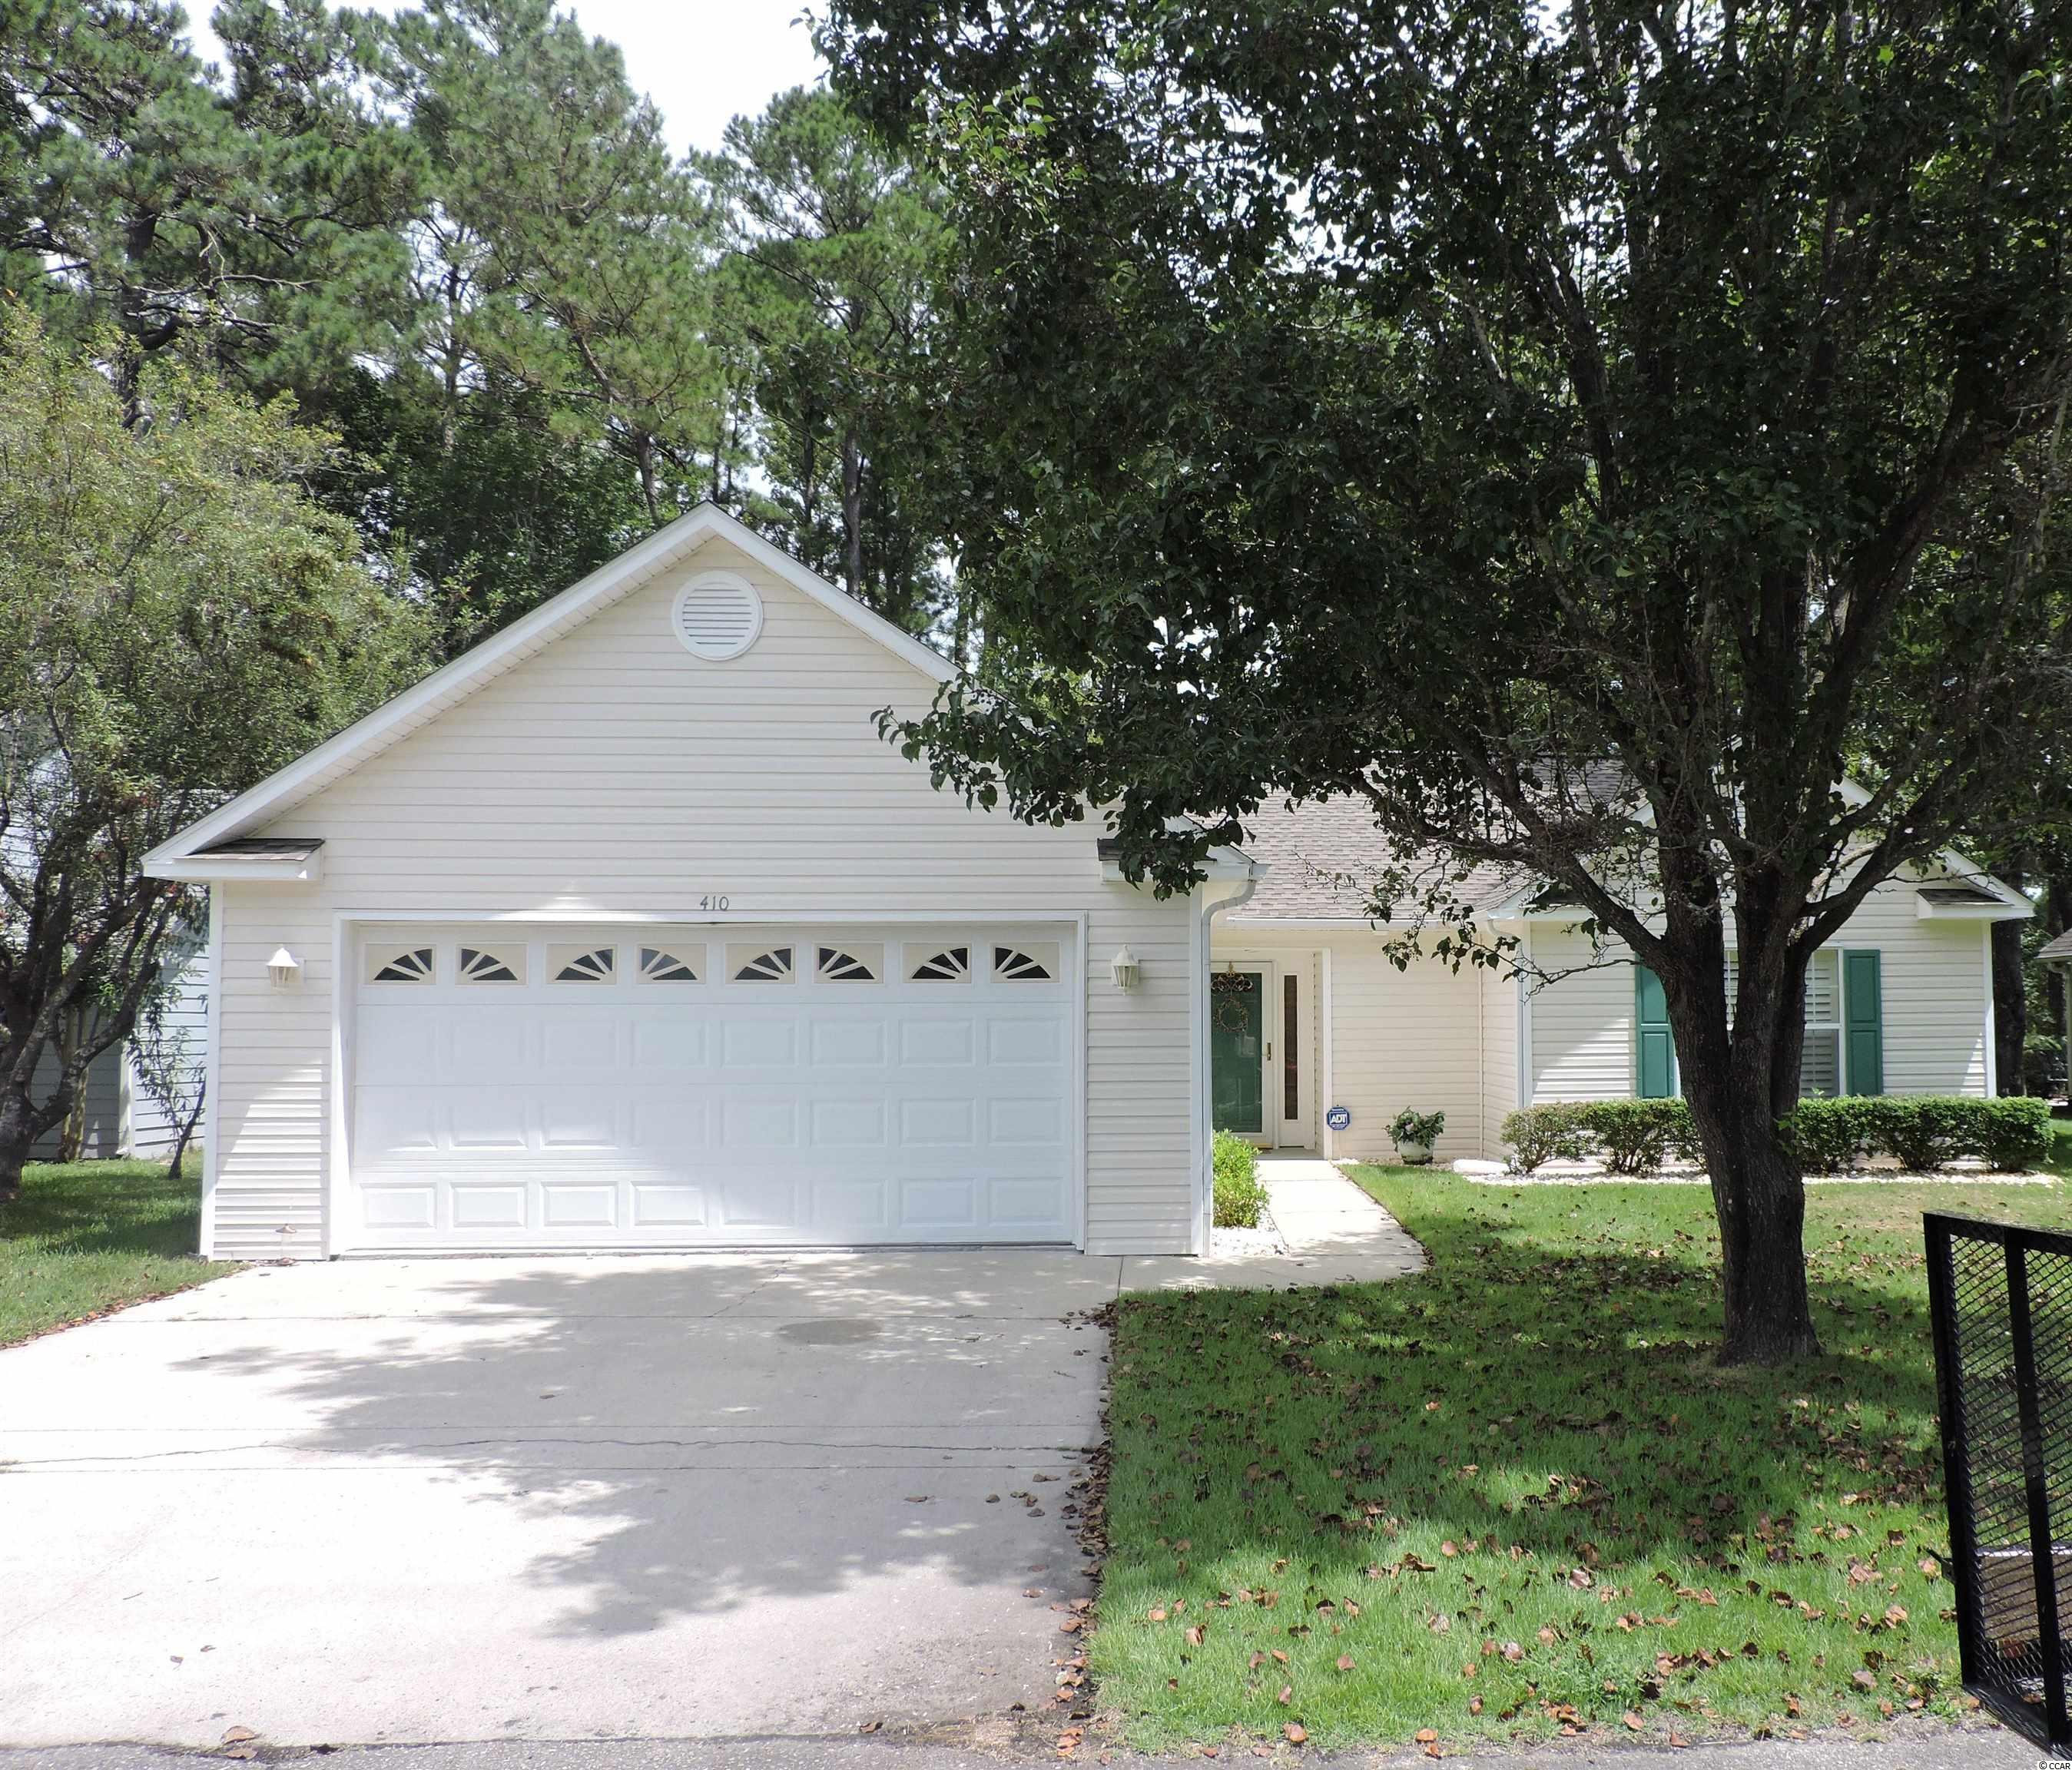 Conveniently located 3 bedroom ranch style home with 2 car garage in The Preserve subdivision off Hwy 9 in Little River, just 10-15 minutes drive to the ocean in North Myrtle Beach. Only one owner since built & has been well maintained.  Nice screened back porch provides views of manicured lawn and wooded area in back of home. Low homeowners fee per year. Community pool. Medical facilities and grocery, pharmacies, restaurants, pet hospital, and other needed services nearby. Make appointment to view this home soon in desired affordable price point as it will not be available on the market for long!